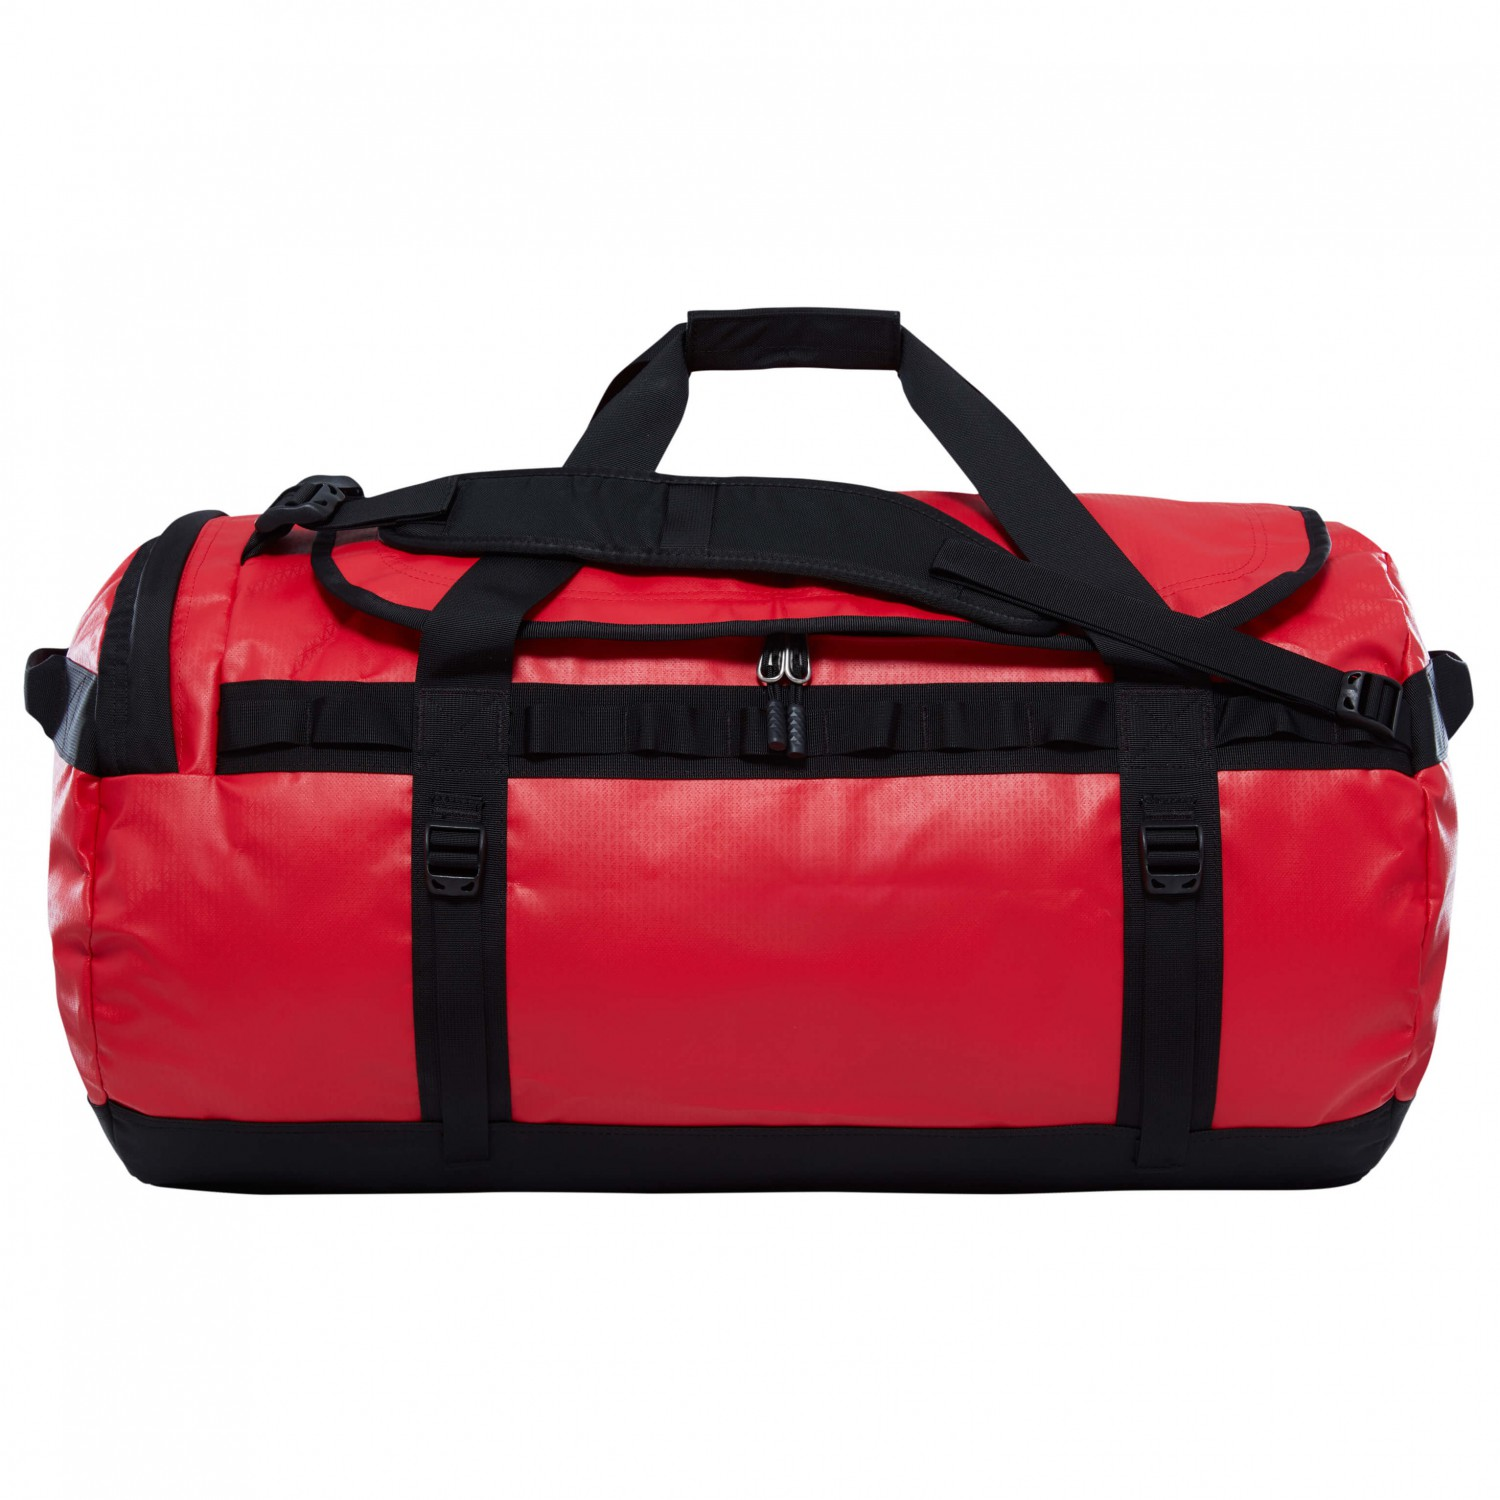 7803611d0 The North Face Base Camp Duffel Large - Luggage | Free EU Delivery ...